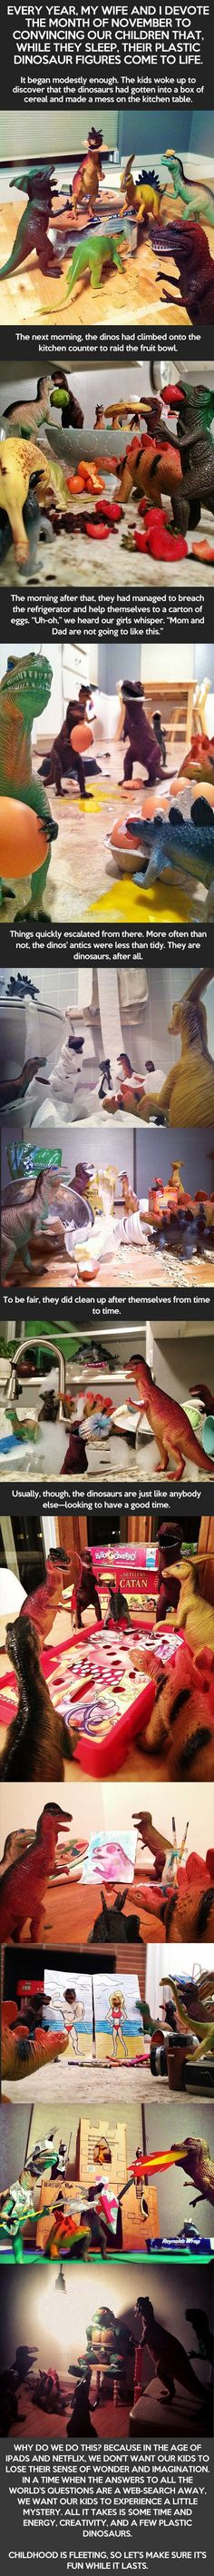 Dinosaurs come alive while the kids sleep. We are so doing this!